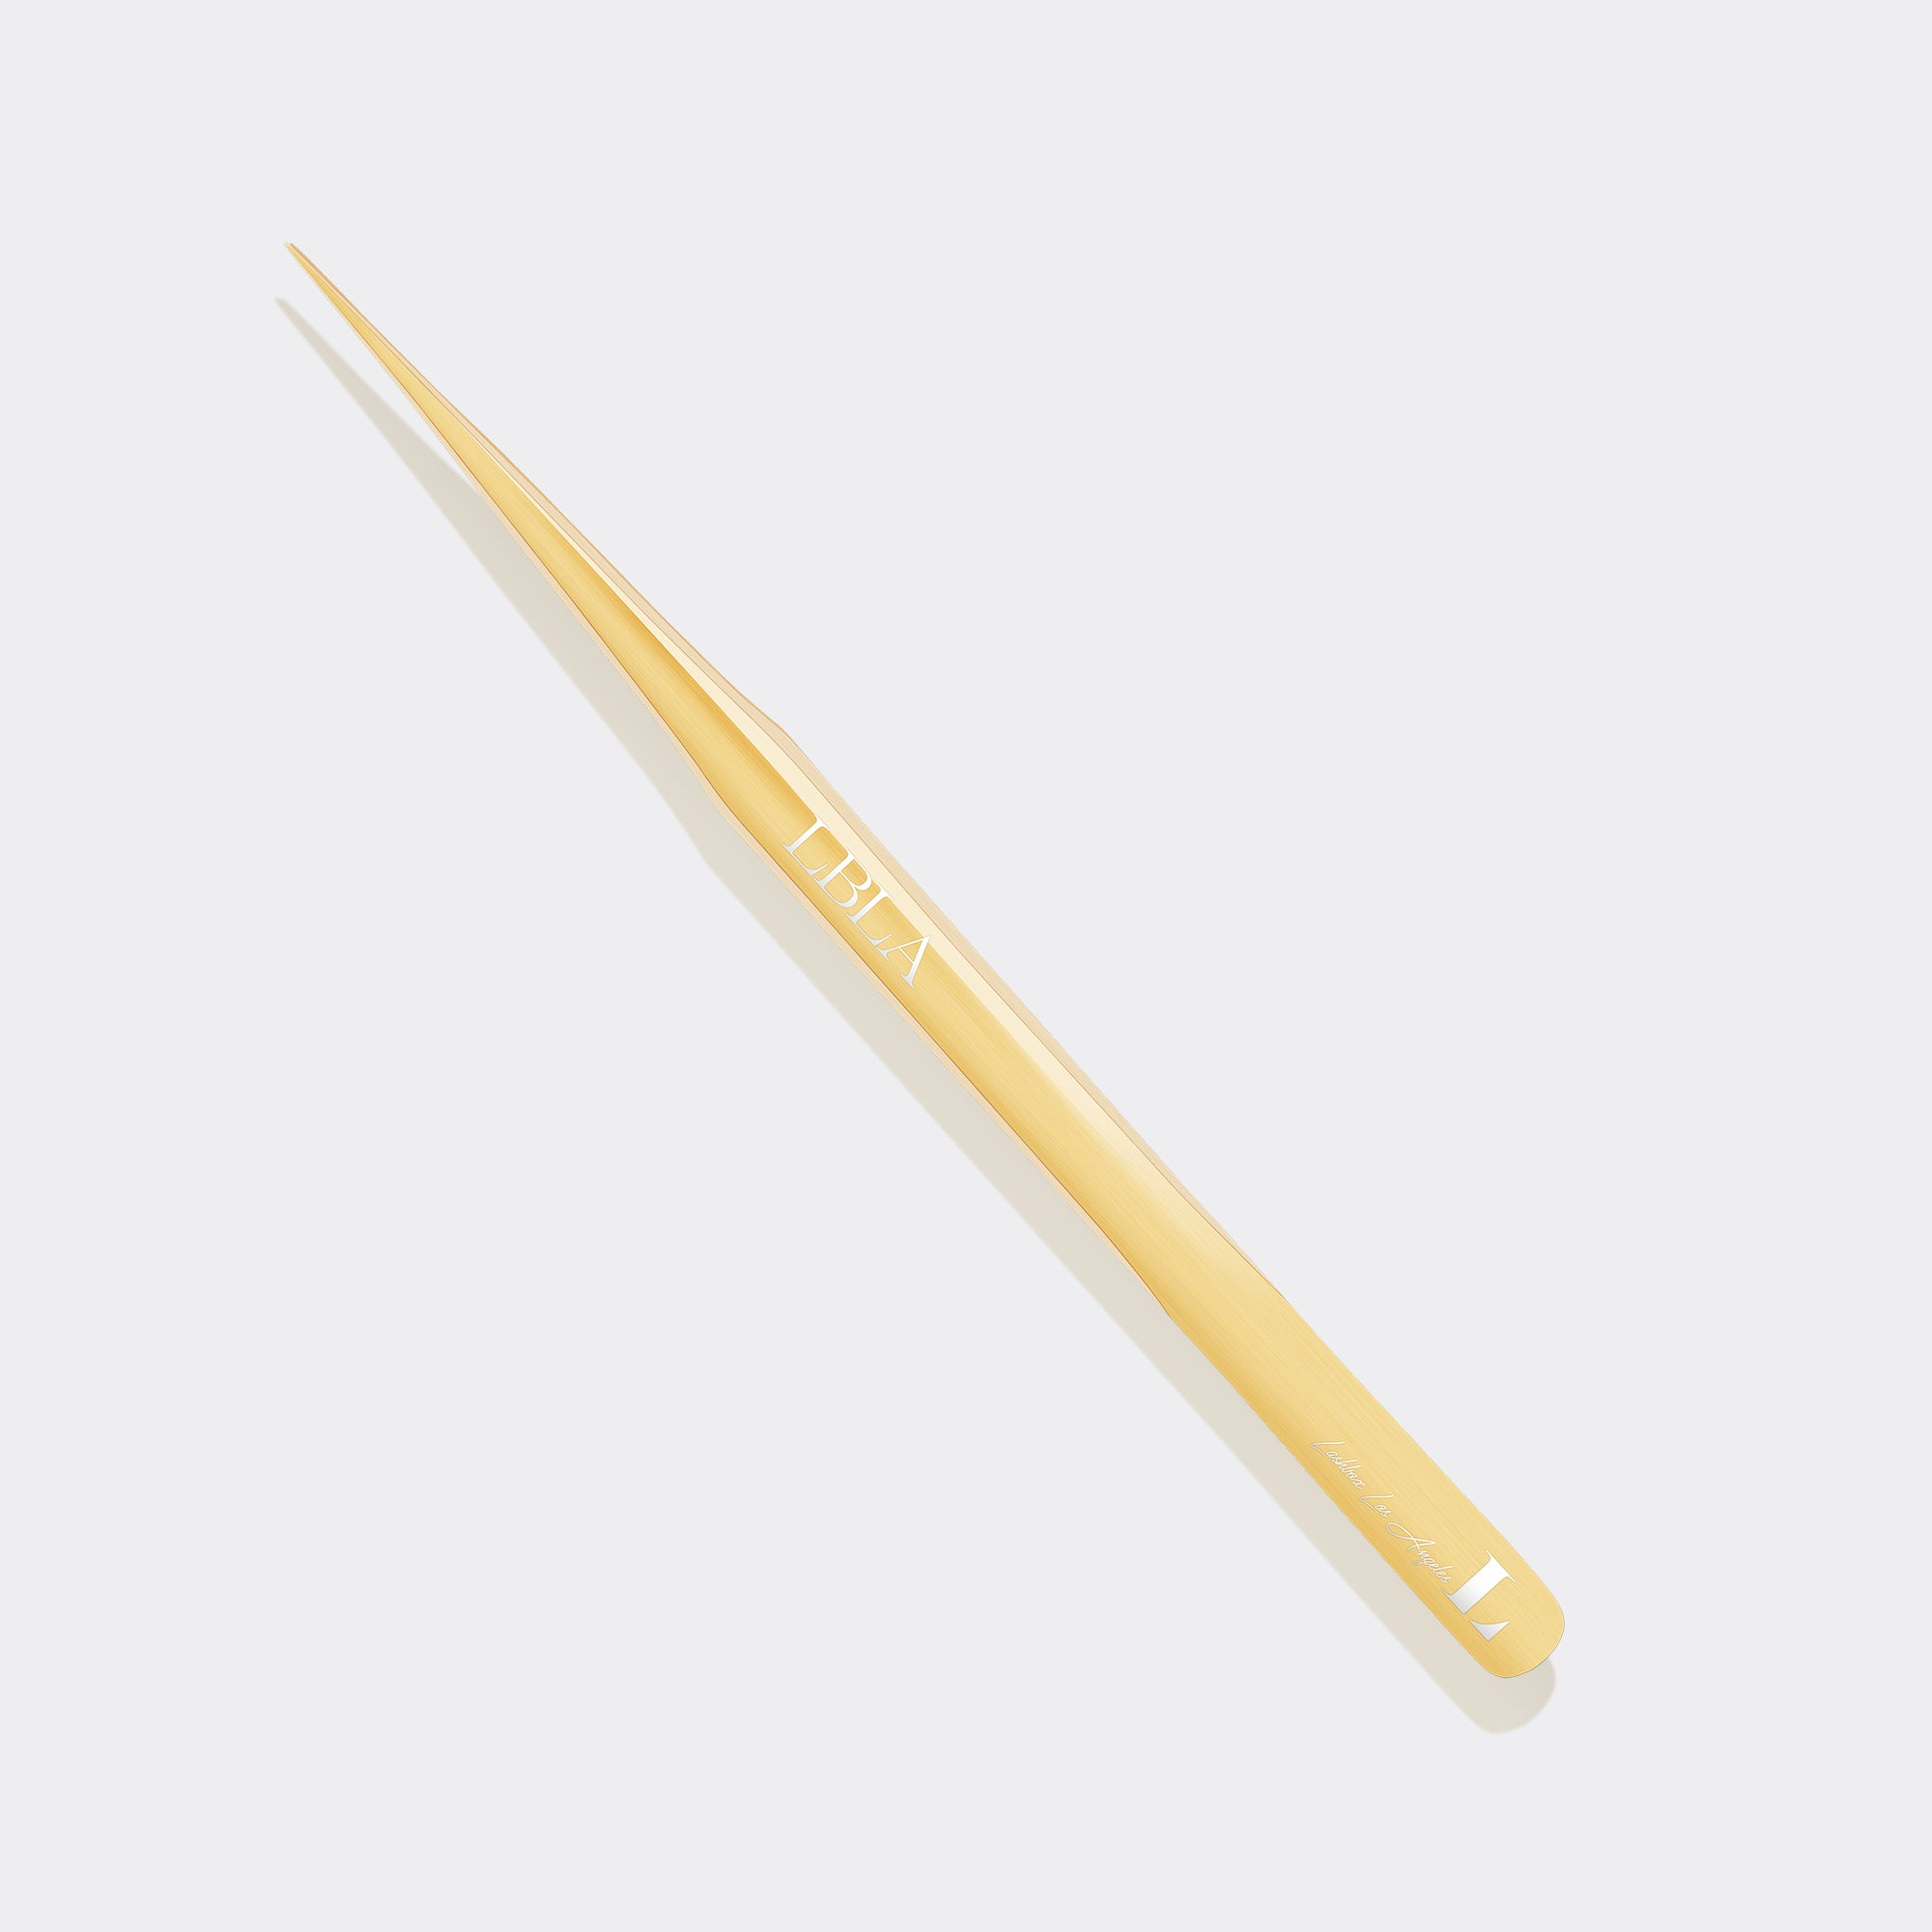 Straight Gold Slim Isolation Tweezer - Long